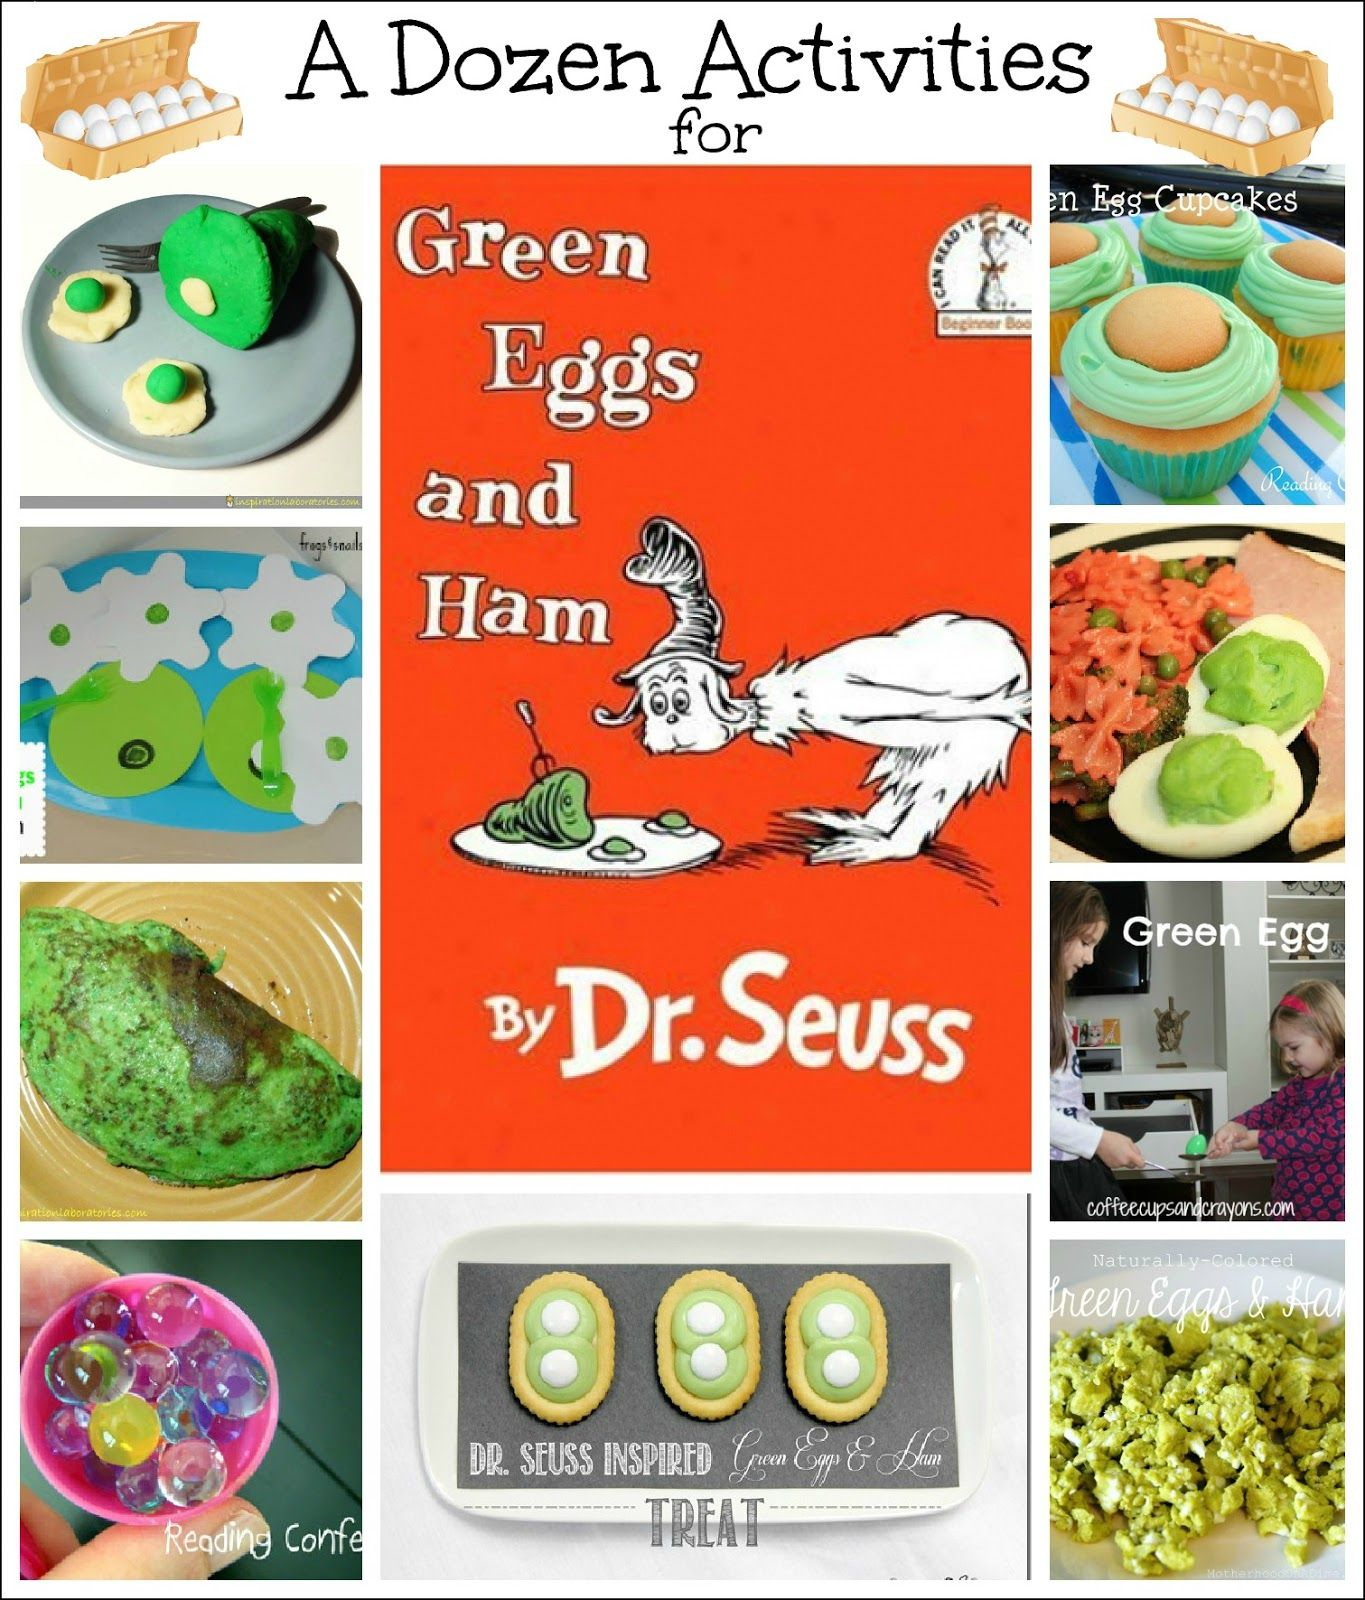 12 Food And Play Ideas Inspired By Green Eggs And Ham By Dr Suess